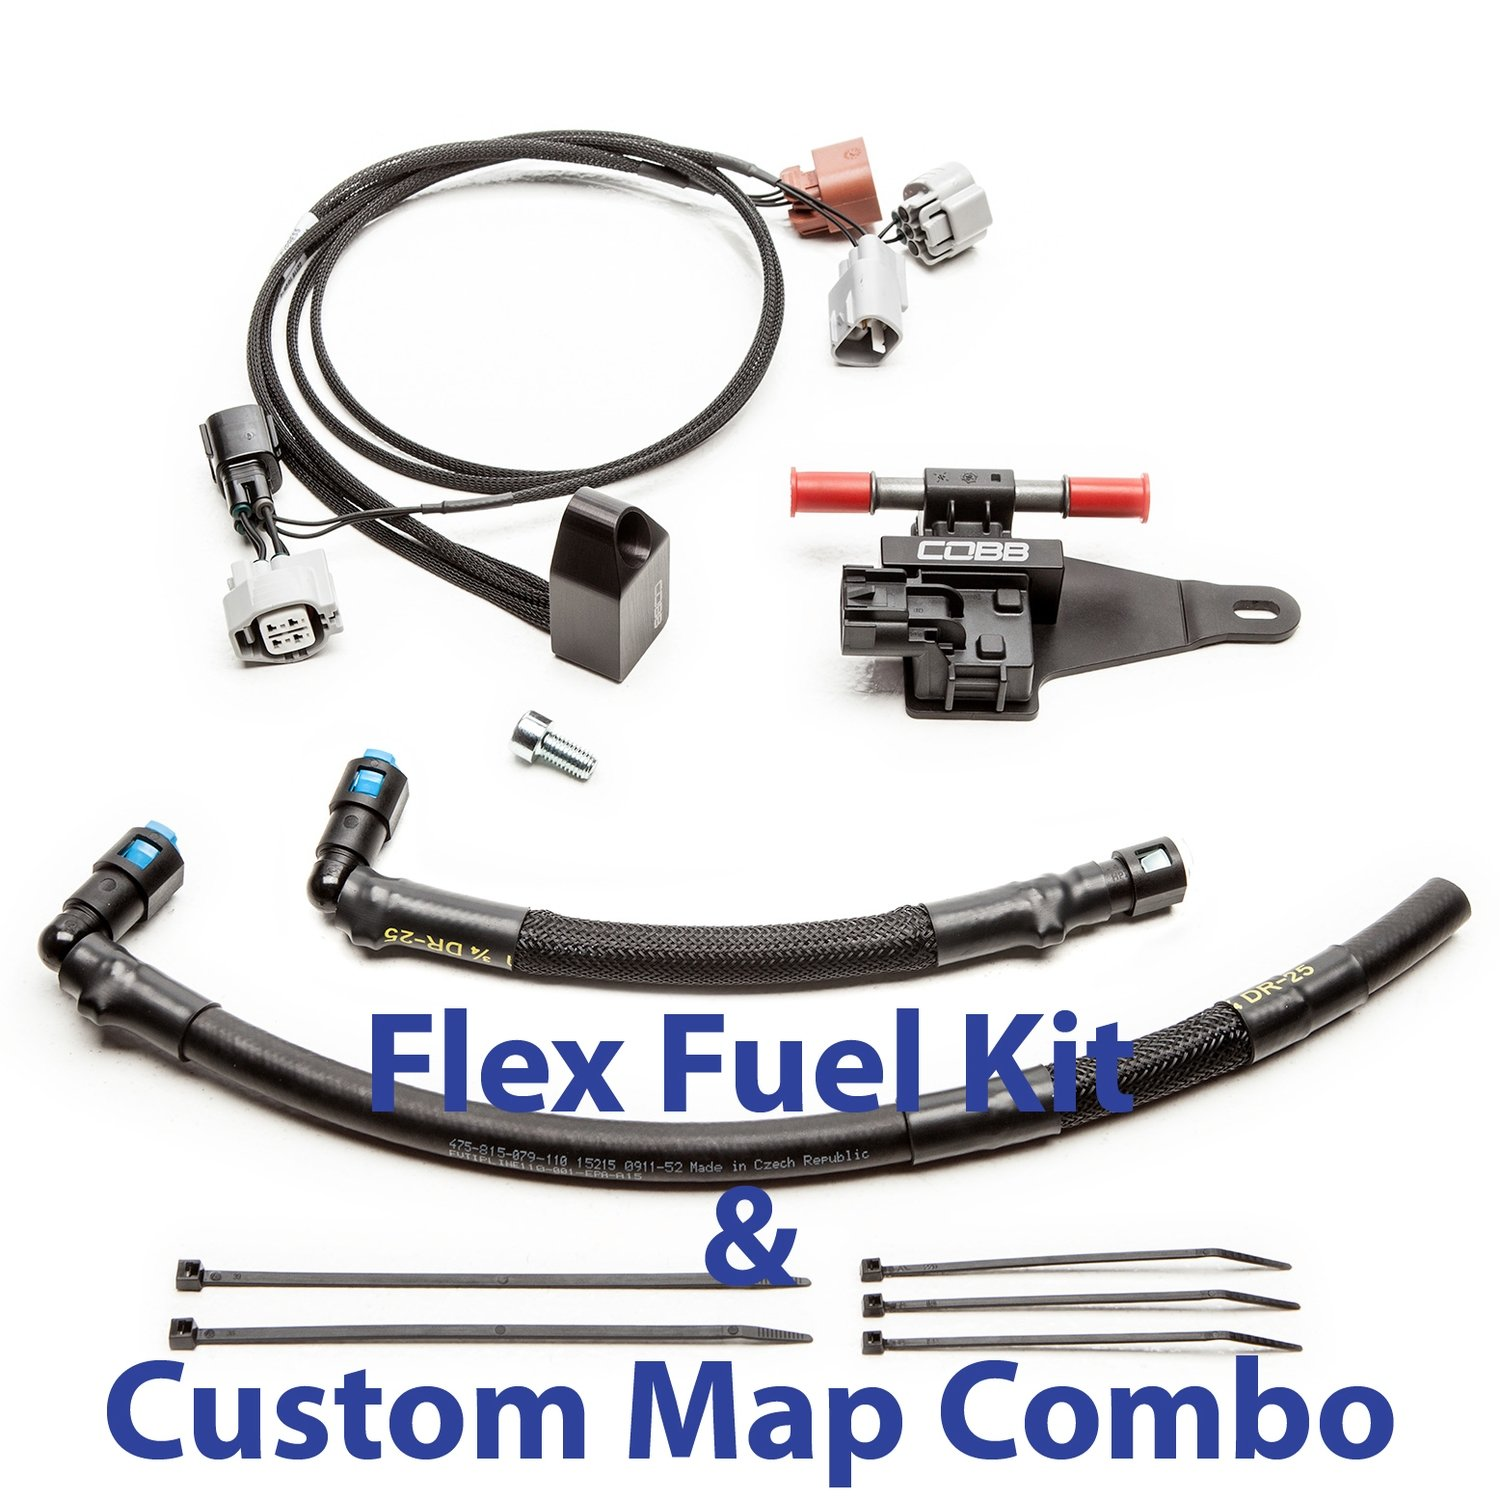 Flex Fuel Kit With Fuel pressure sensor & Custom ProTune Map  STI 2008-2016, WRX 2006-2014, FXT 05-08, LGT 05 to 12